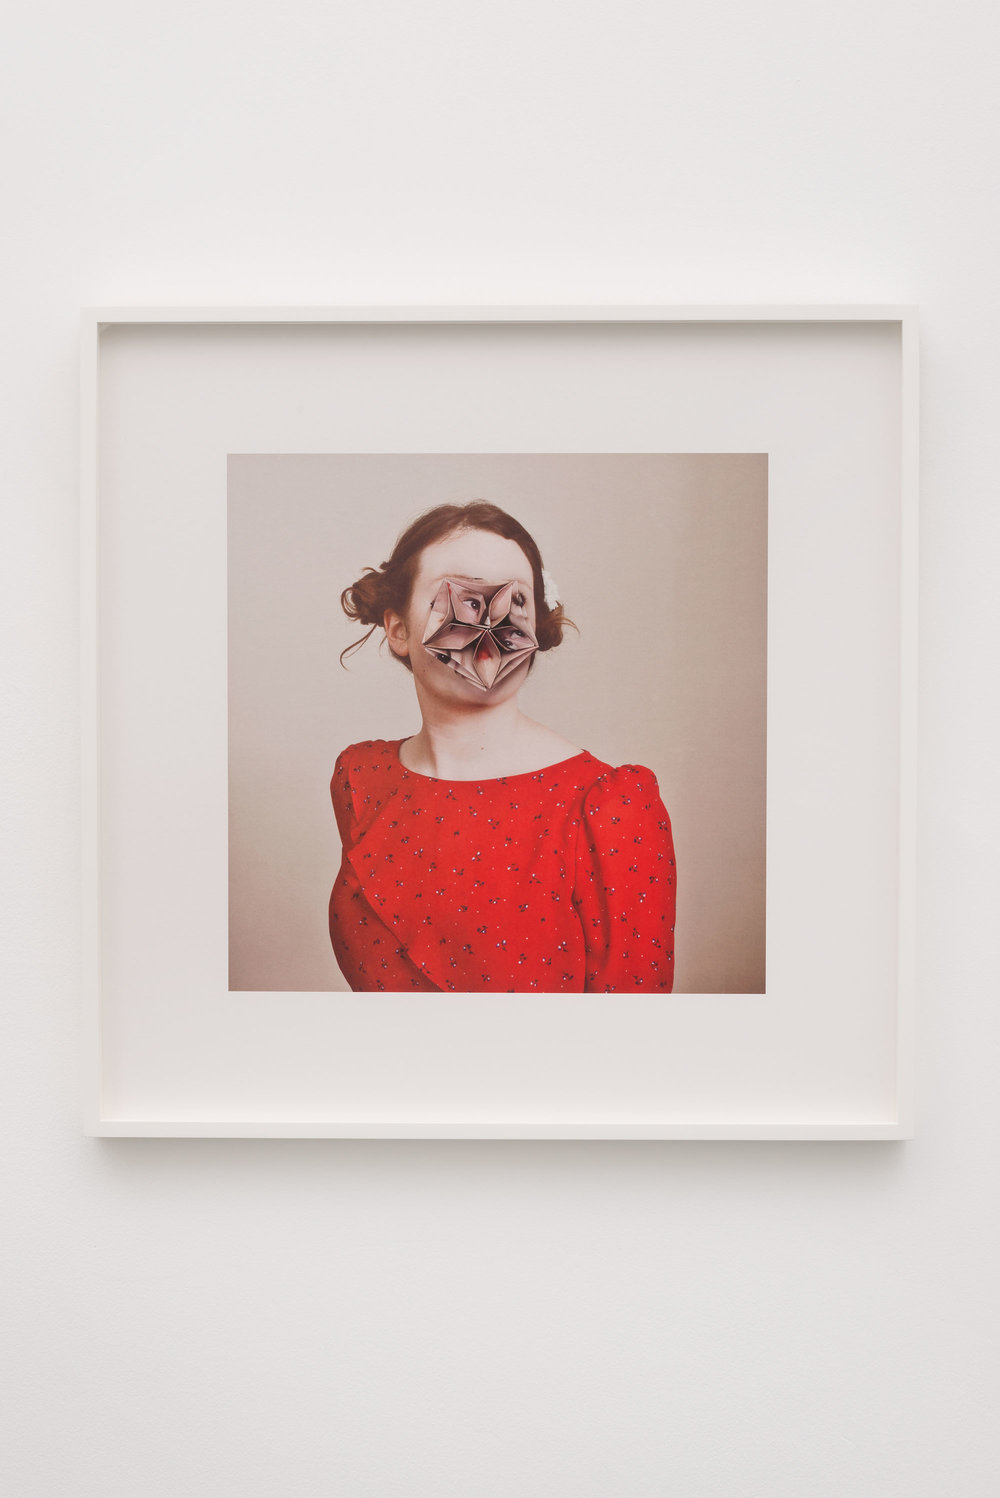 Alma Haser,  Patient No. 4 (Alex) , 2013  Digital pigment print, 60 x 60 cm (approx. 24 x 24 in), edition of 10, framed   Inquire